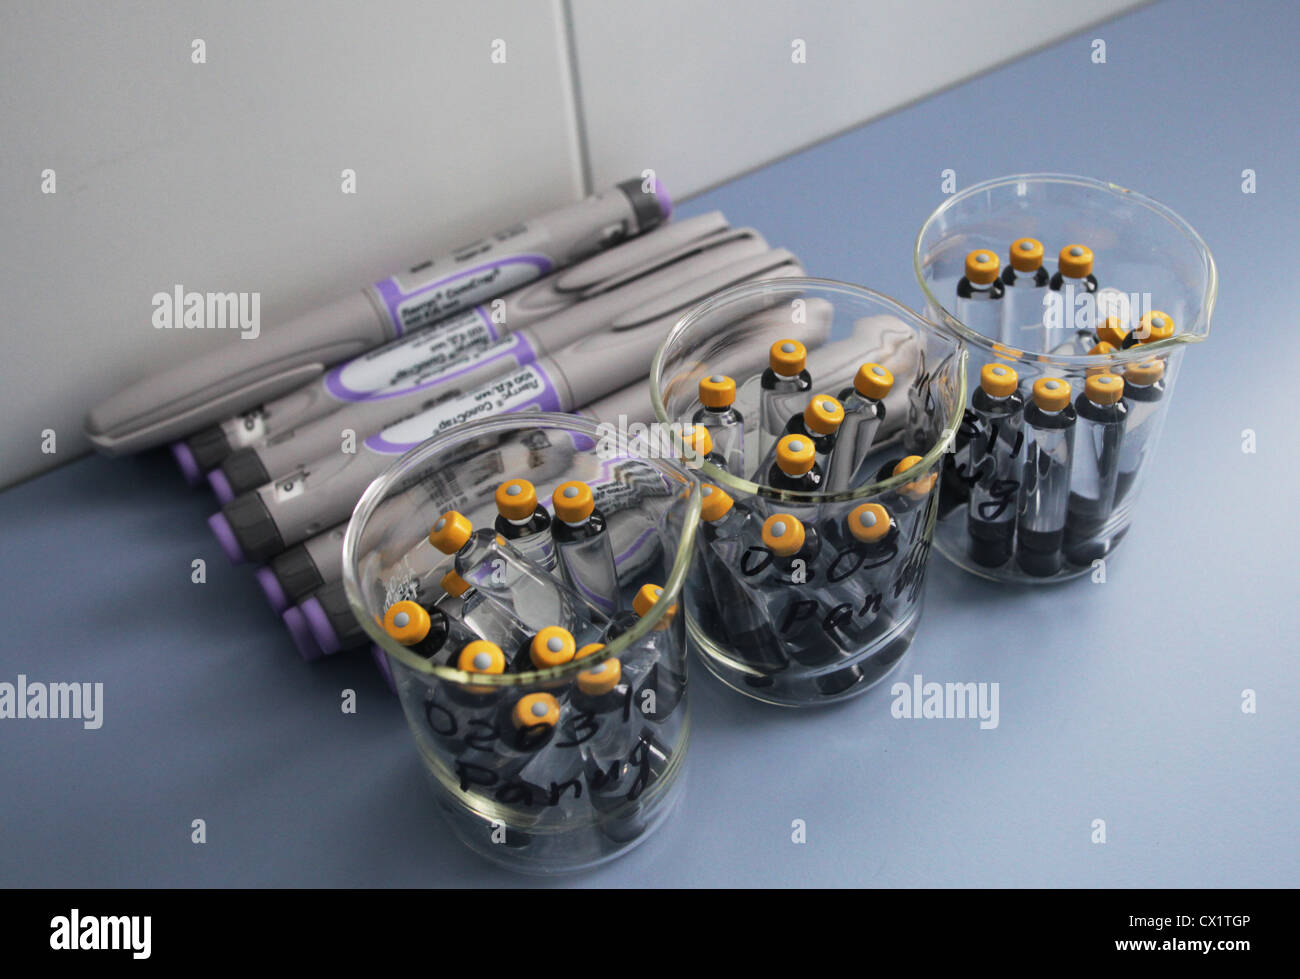 ITAR-TASS: ORYOL REGION, RUSSIA. MAY 24, 2011. A display of vials containing human soluble insulin (brand name Insuman - Stock Image